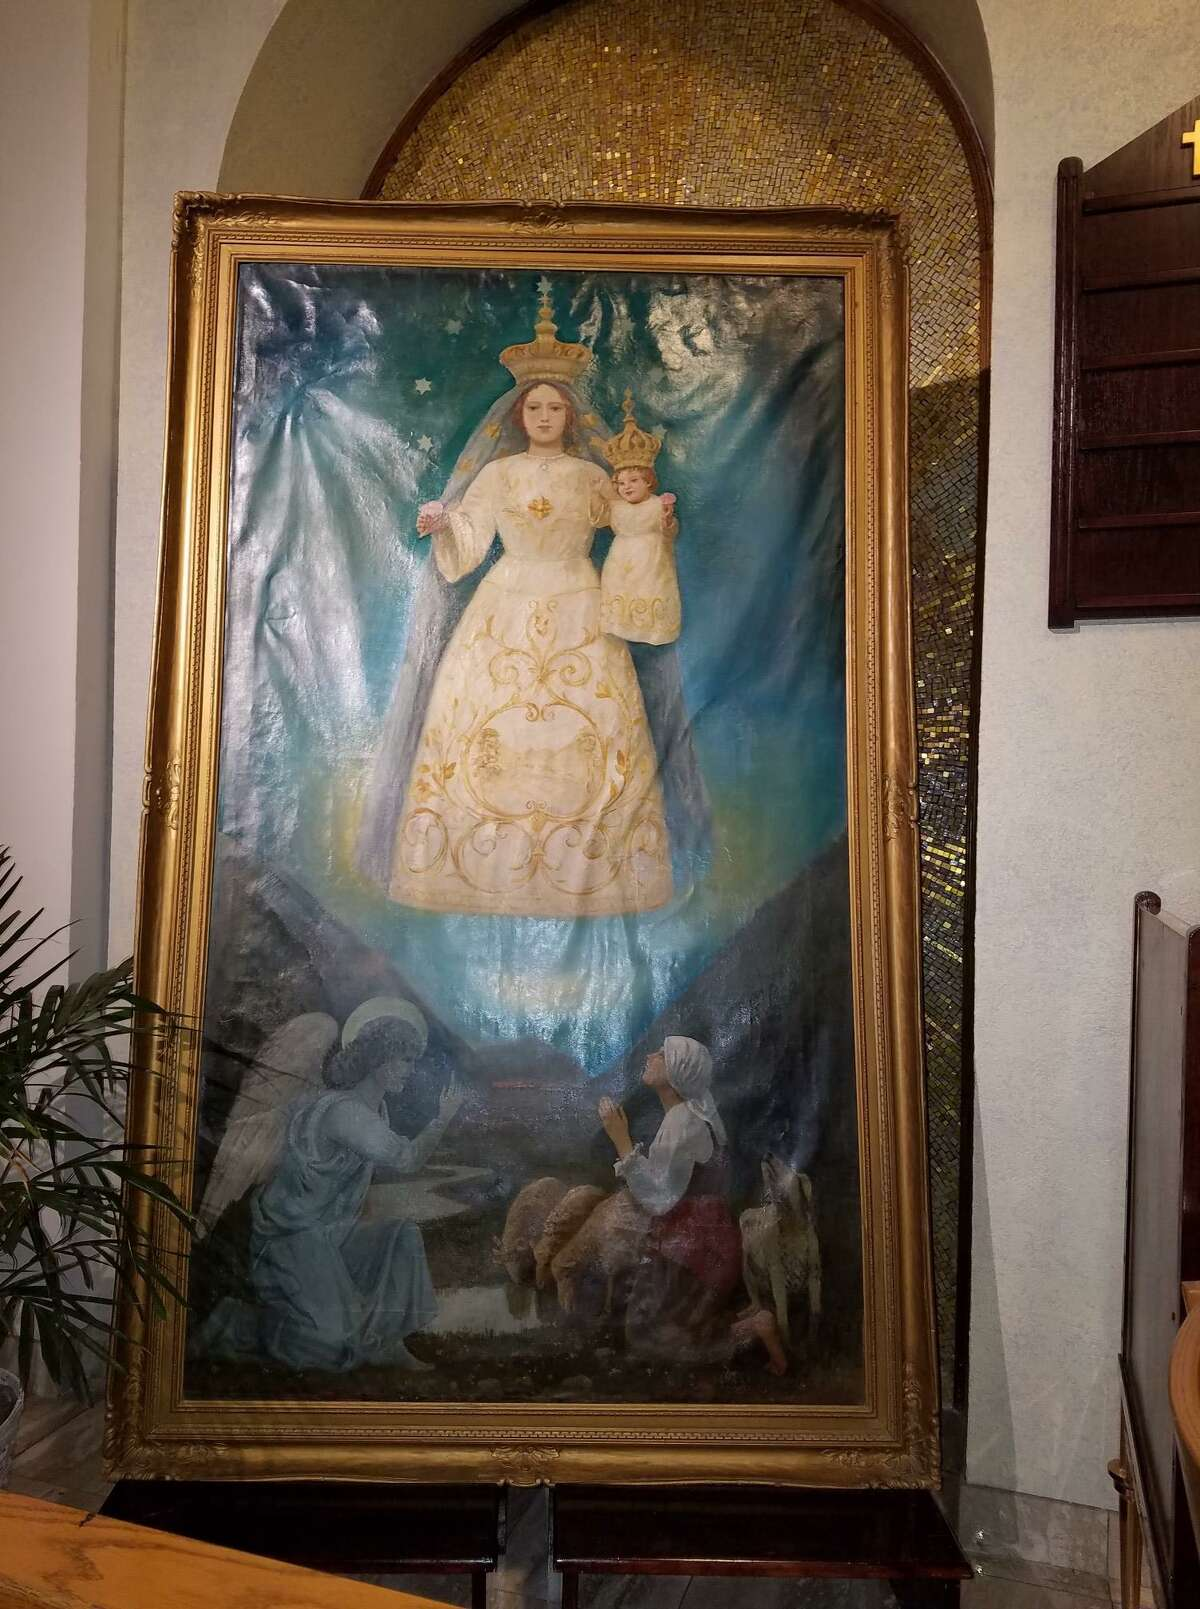 La Madonna di Canneto, a painting owned by a Stamford-Italian social club, has gone missing.